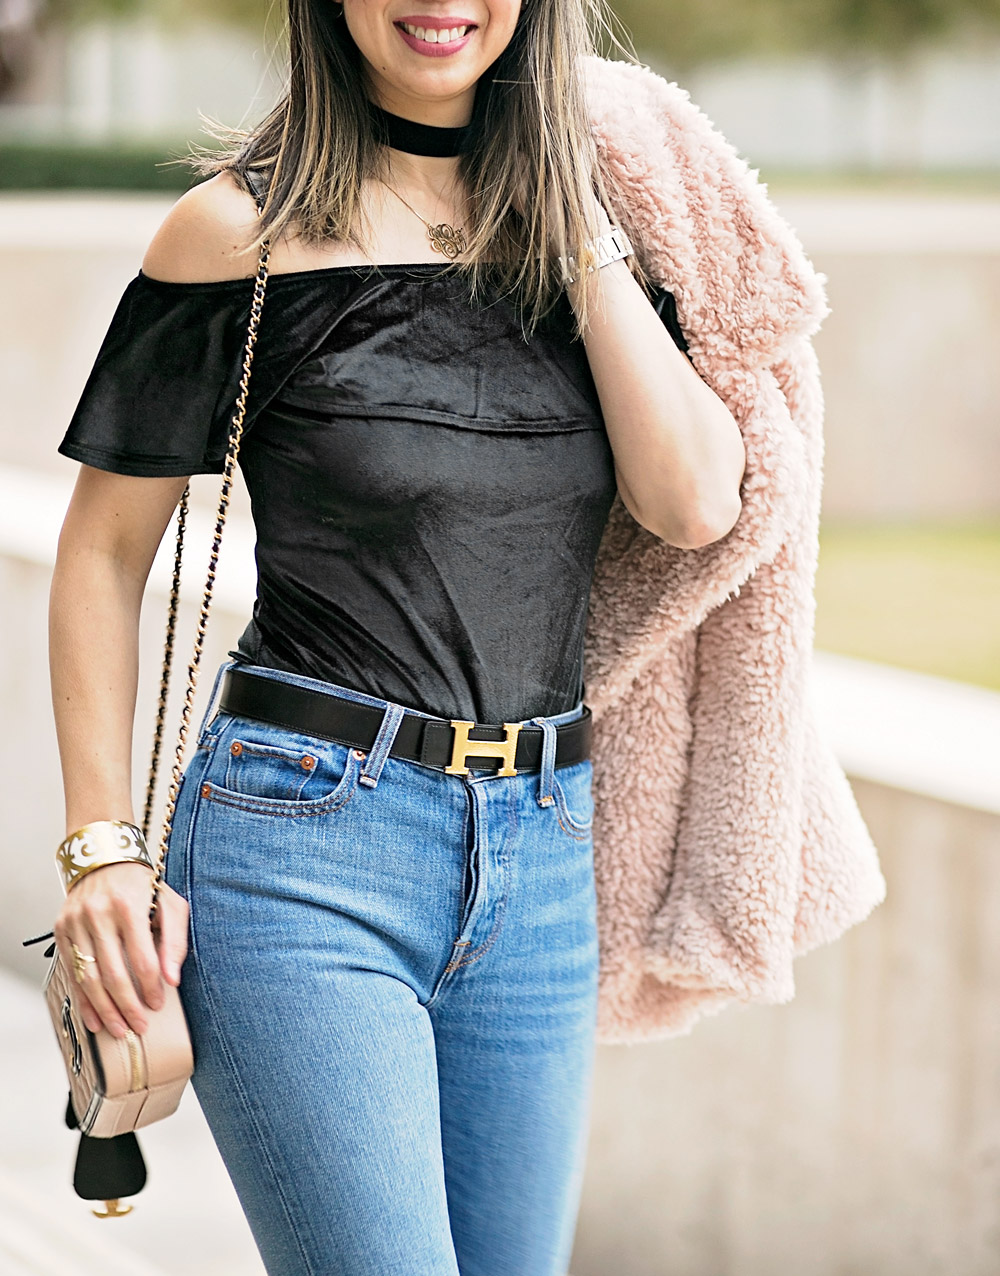 tularosa pink fur coat, velvet off the shoulder top with high waisted jeans and chanel slingbacks